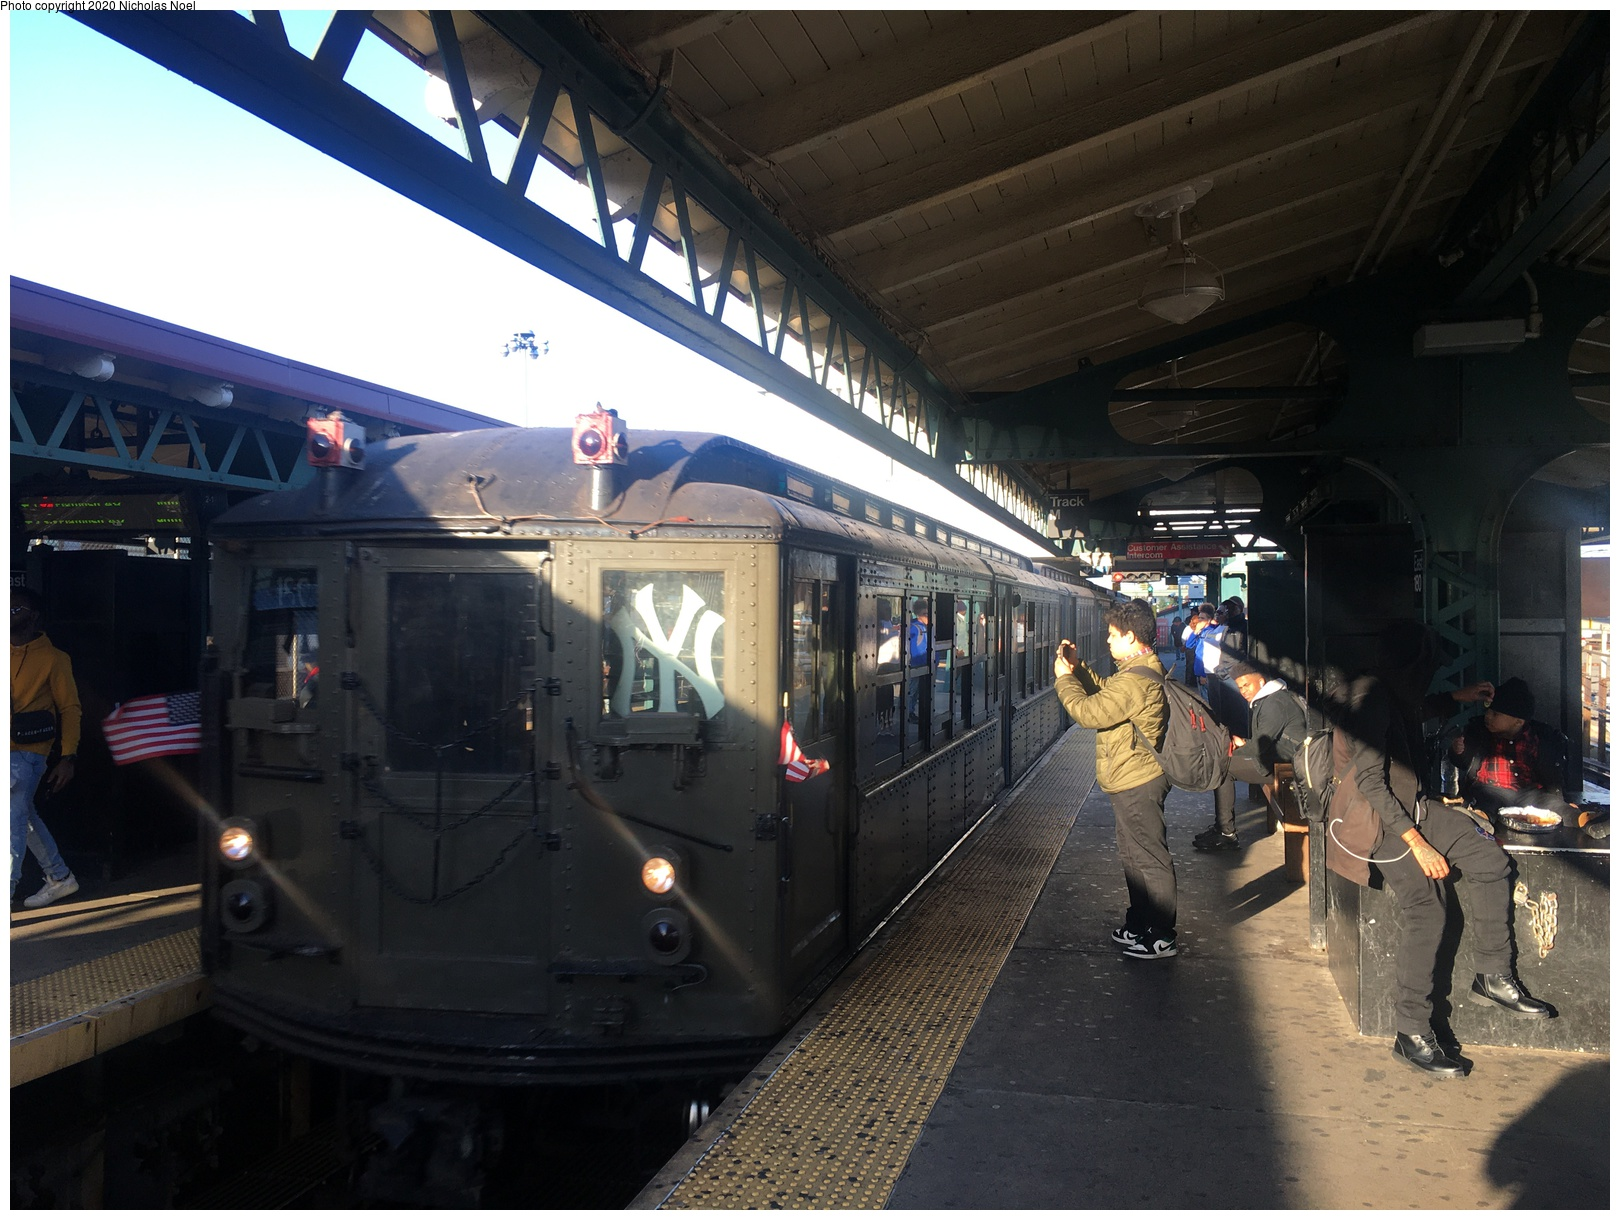 (214k, 806x820)<br><b>Country:</b> United States<br><b>City:</b> New York<br><b>System:</b> New York City Transit<br><b>Line:</b> IRT West Side Line<br><b>Location:</b> Chambers Street <br><b>Car:</b> Low-V  <br><b>Photo by:</b> Joel Shanus<br><b>Viewed (this week/total):</b> 0 / 1209